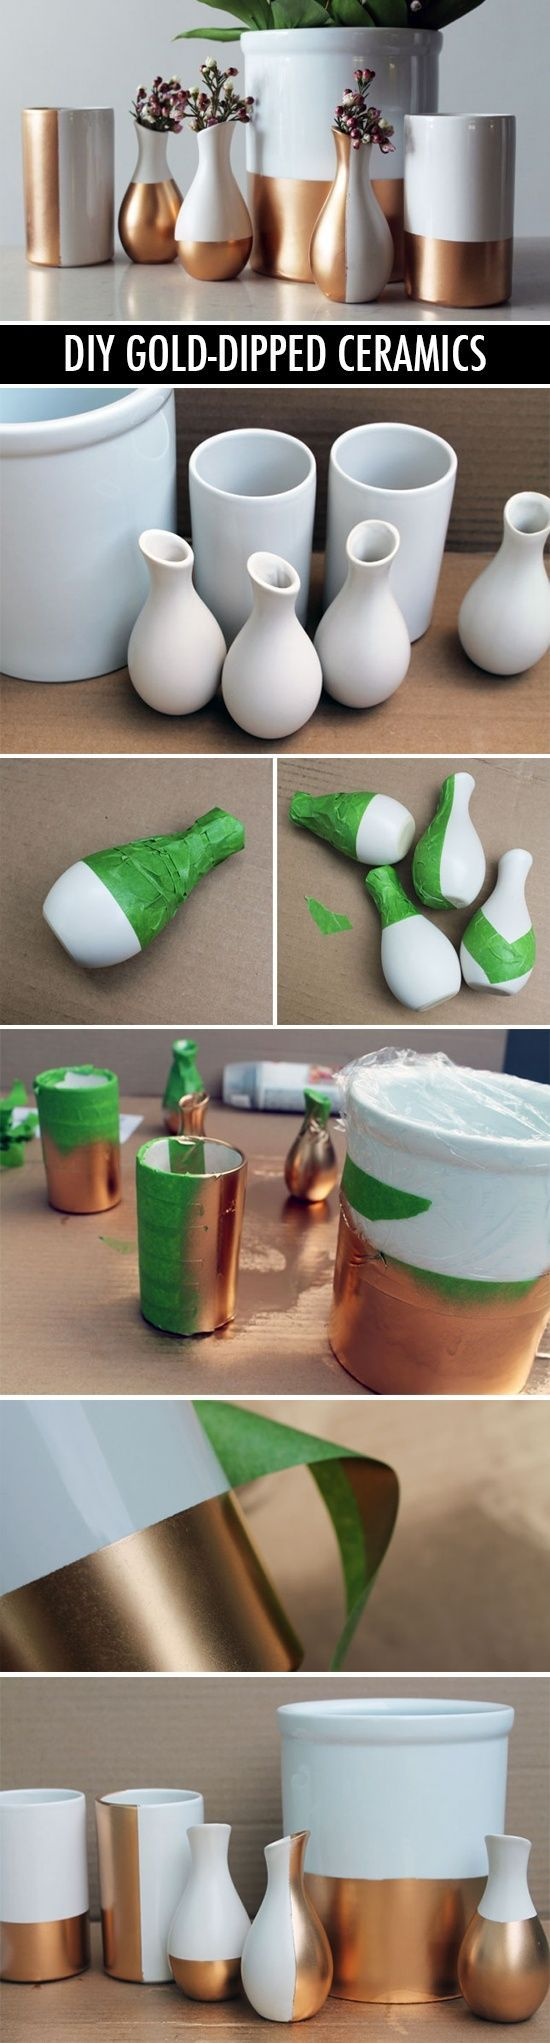 DIY Weekend Project: Gold-dipped ceramic vases ..........レ O √ 乇 ❤